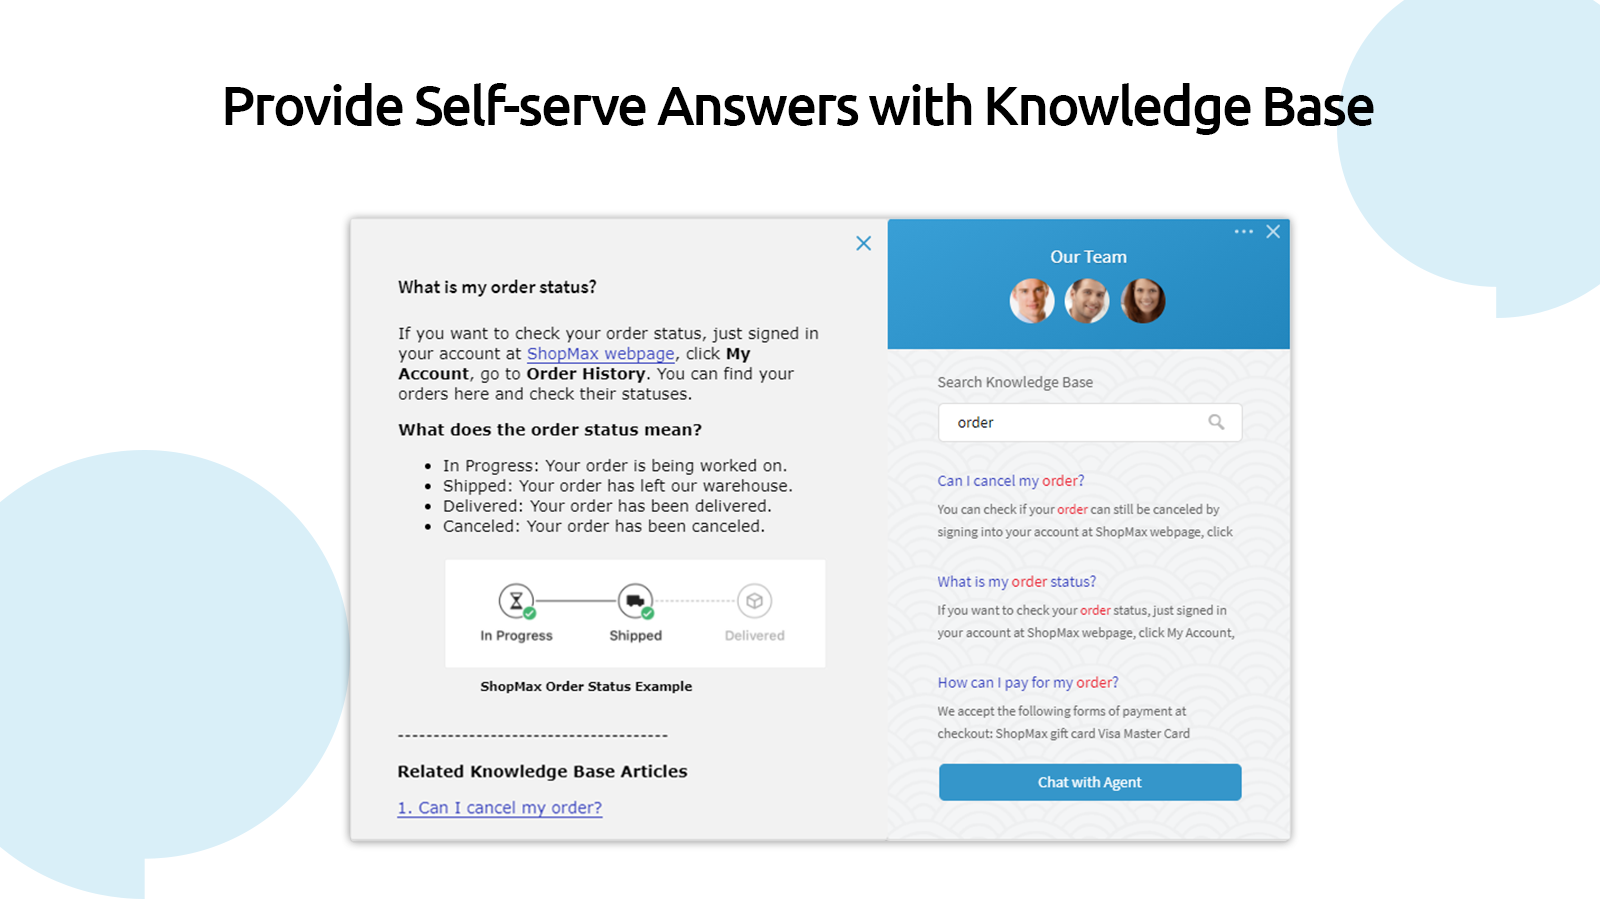 Provide Self-serve Answers with Knowledge Base